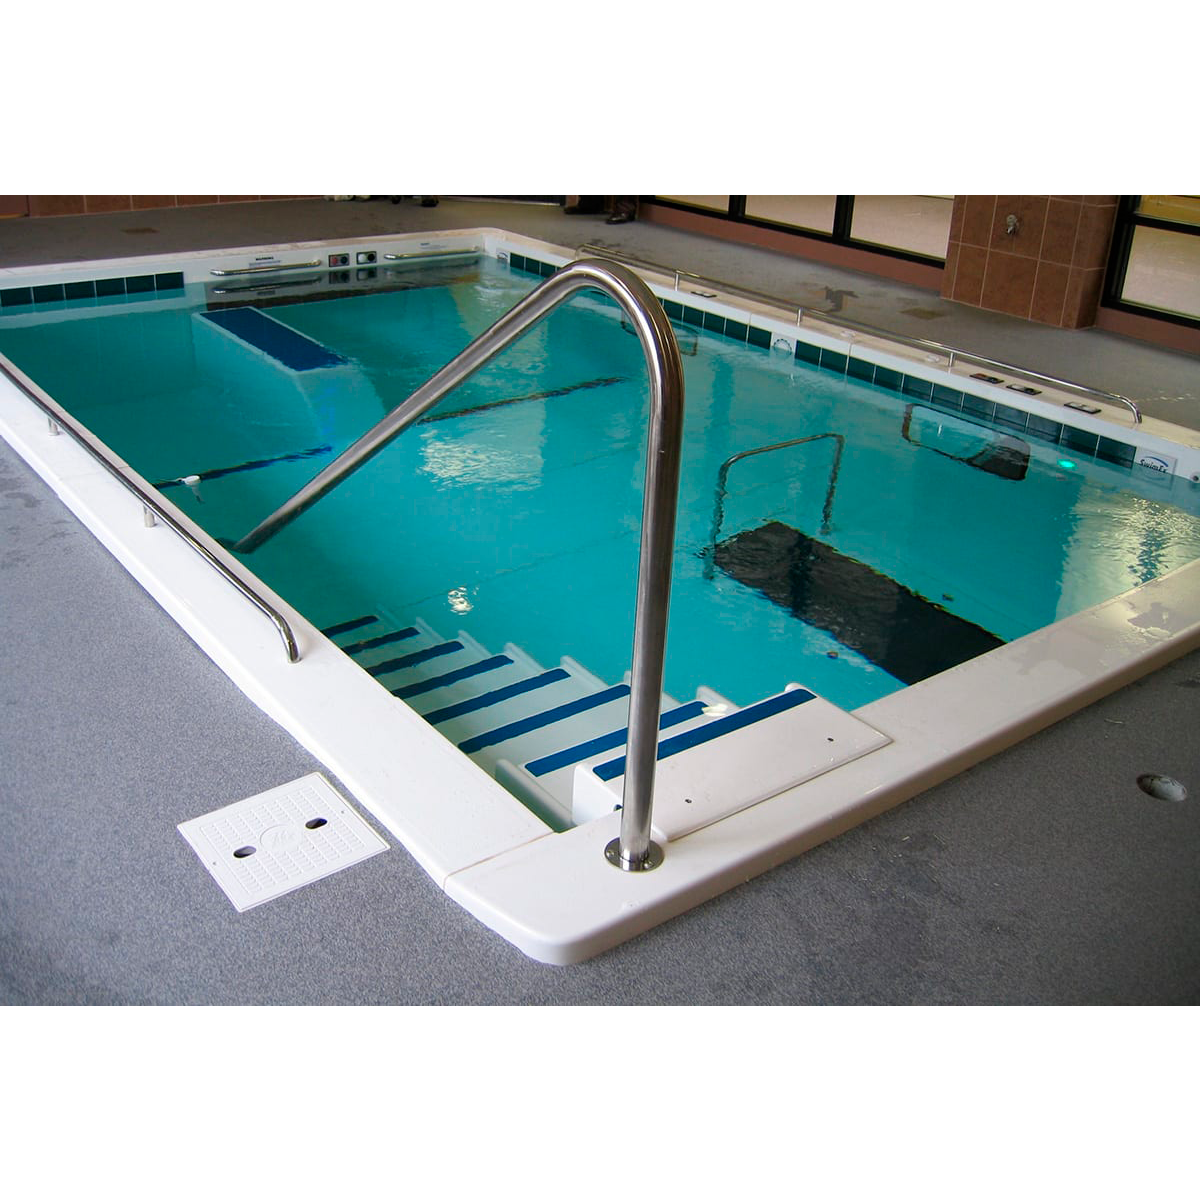 Rehabilitation swimming pools